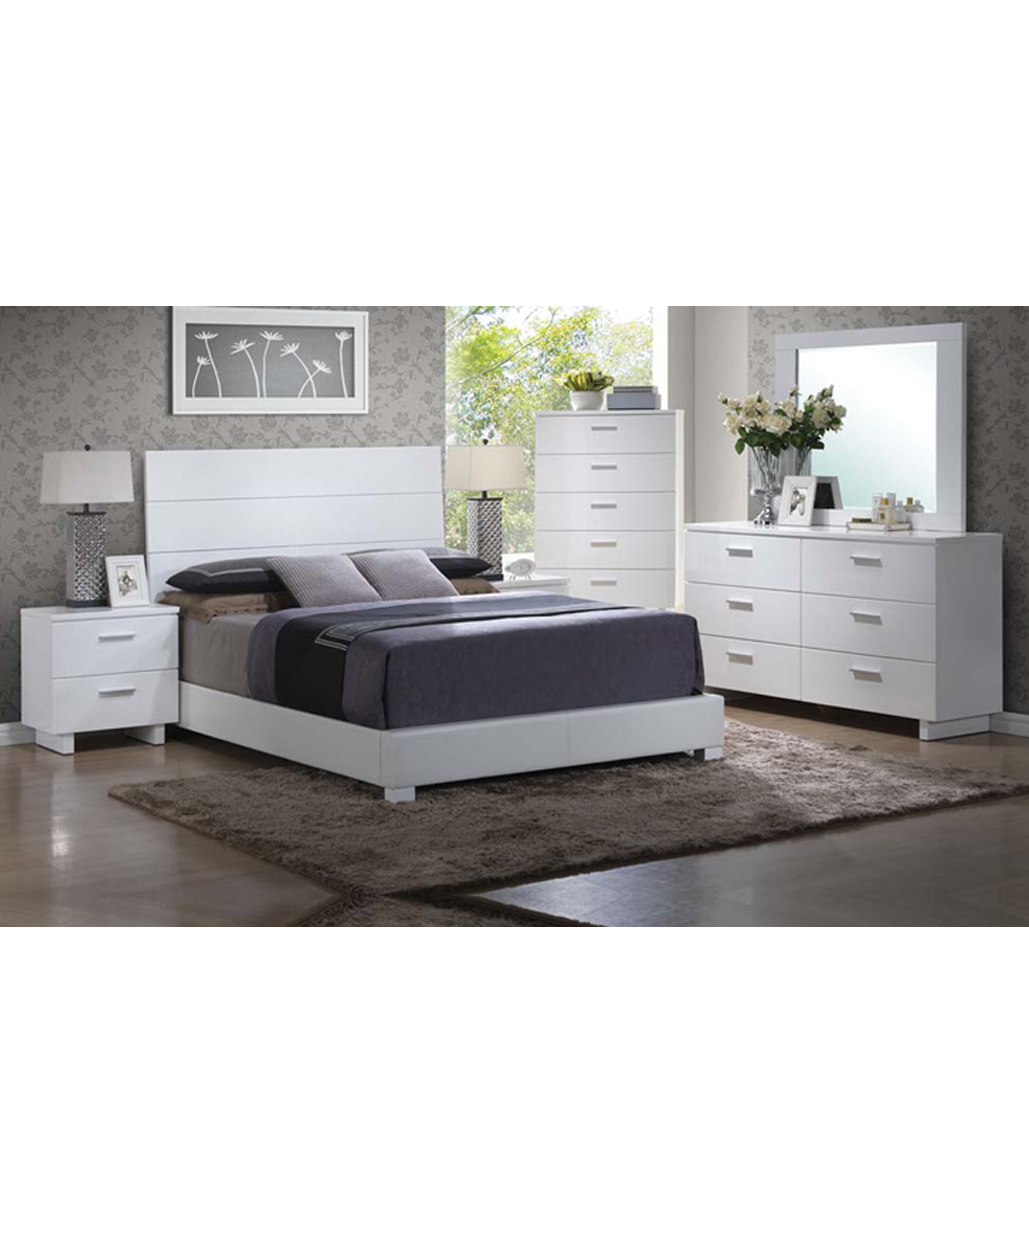 White Gloss Modern Bedroom Set Stage Design Miami Furniture Store